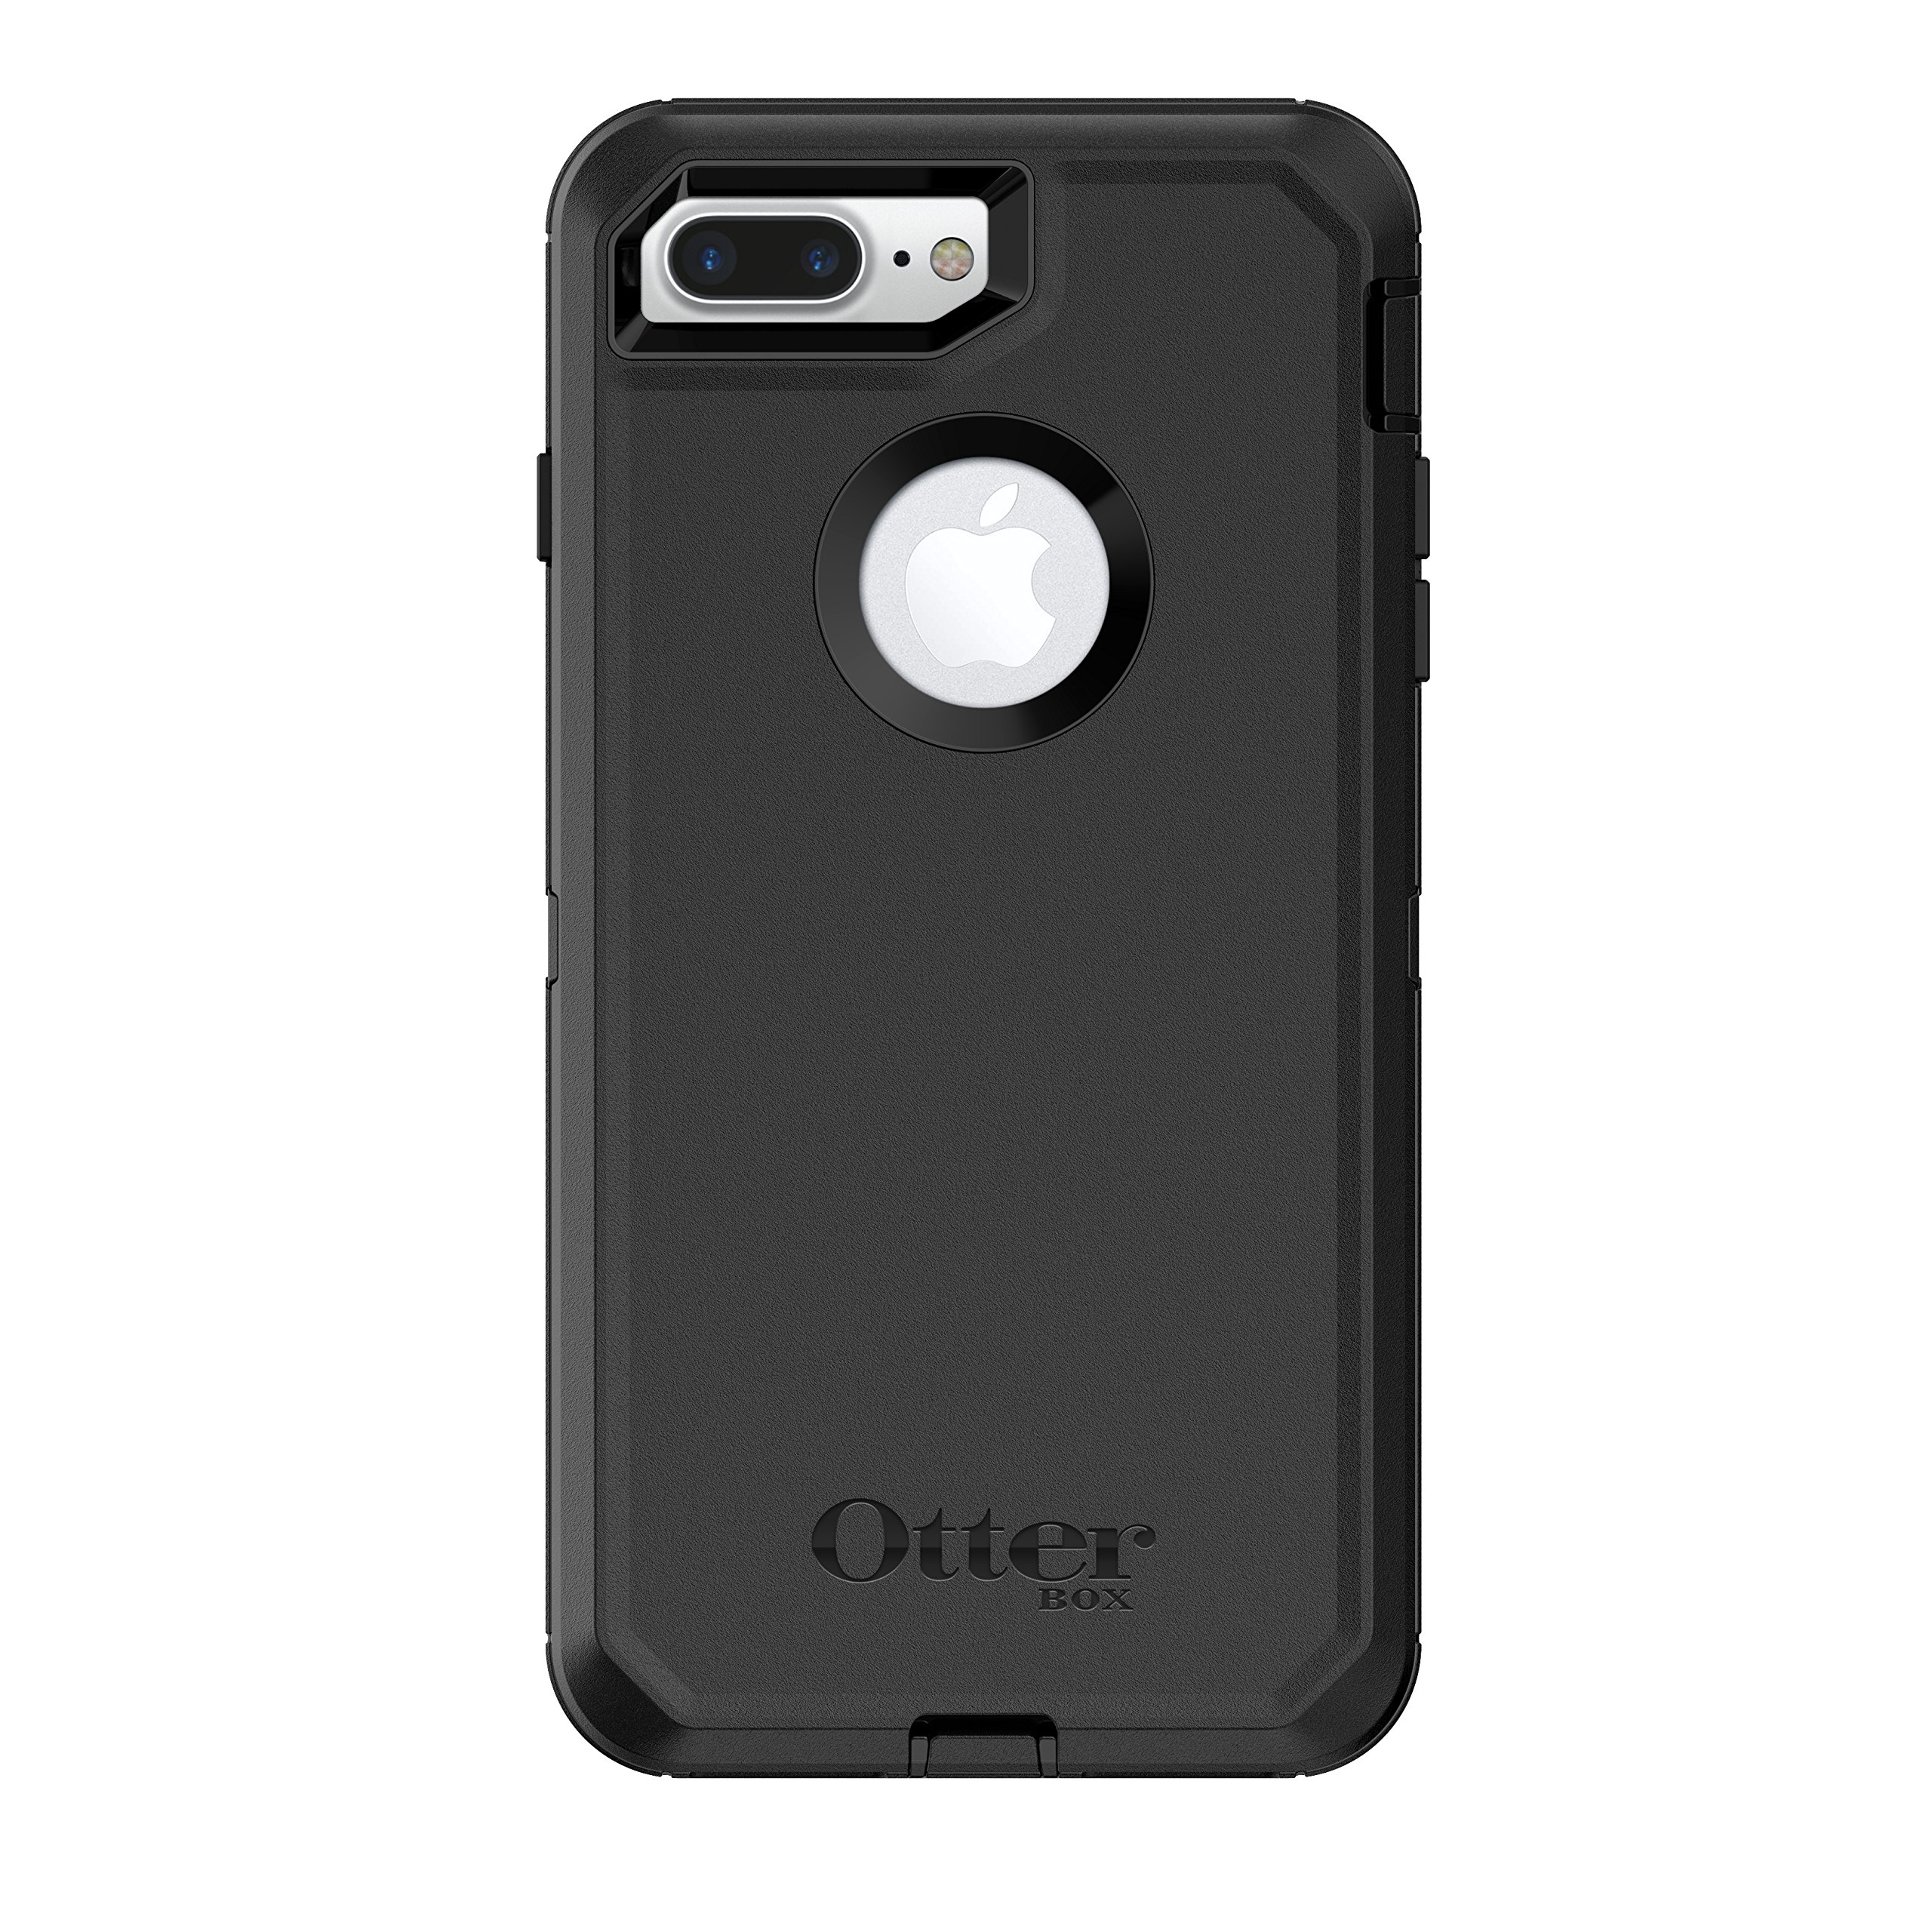 OtterBox Defender Series Case for iPhone 8 Plus & iPhone 7 Plus (Only) - Retail Packaging - Black by OtterBox